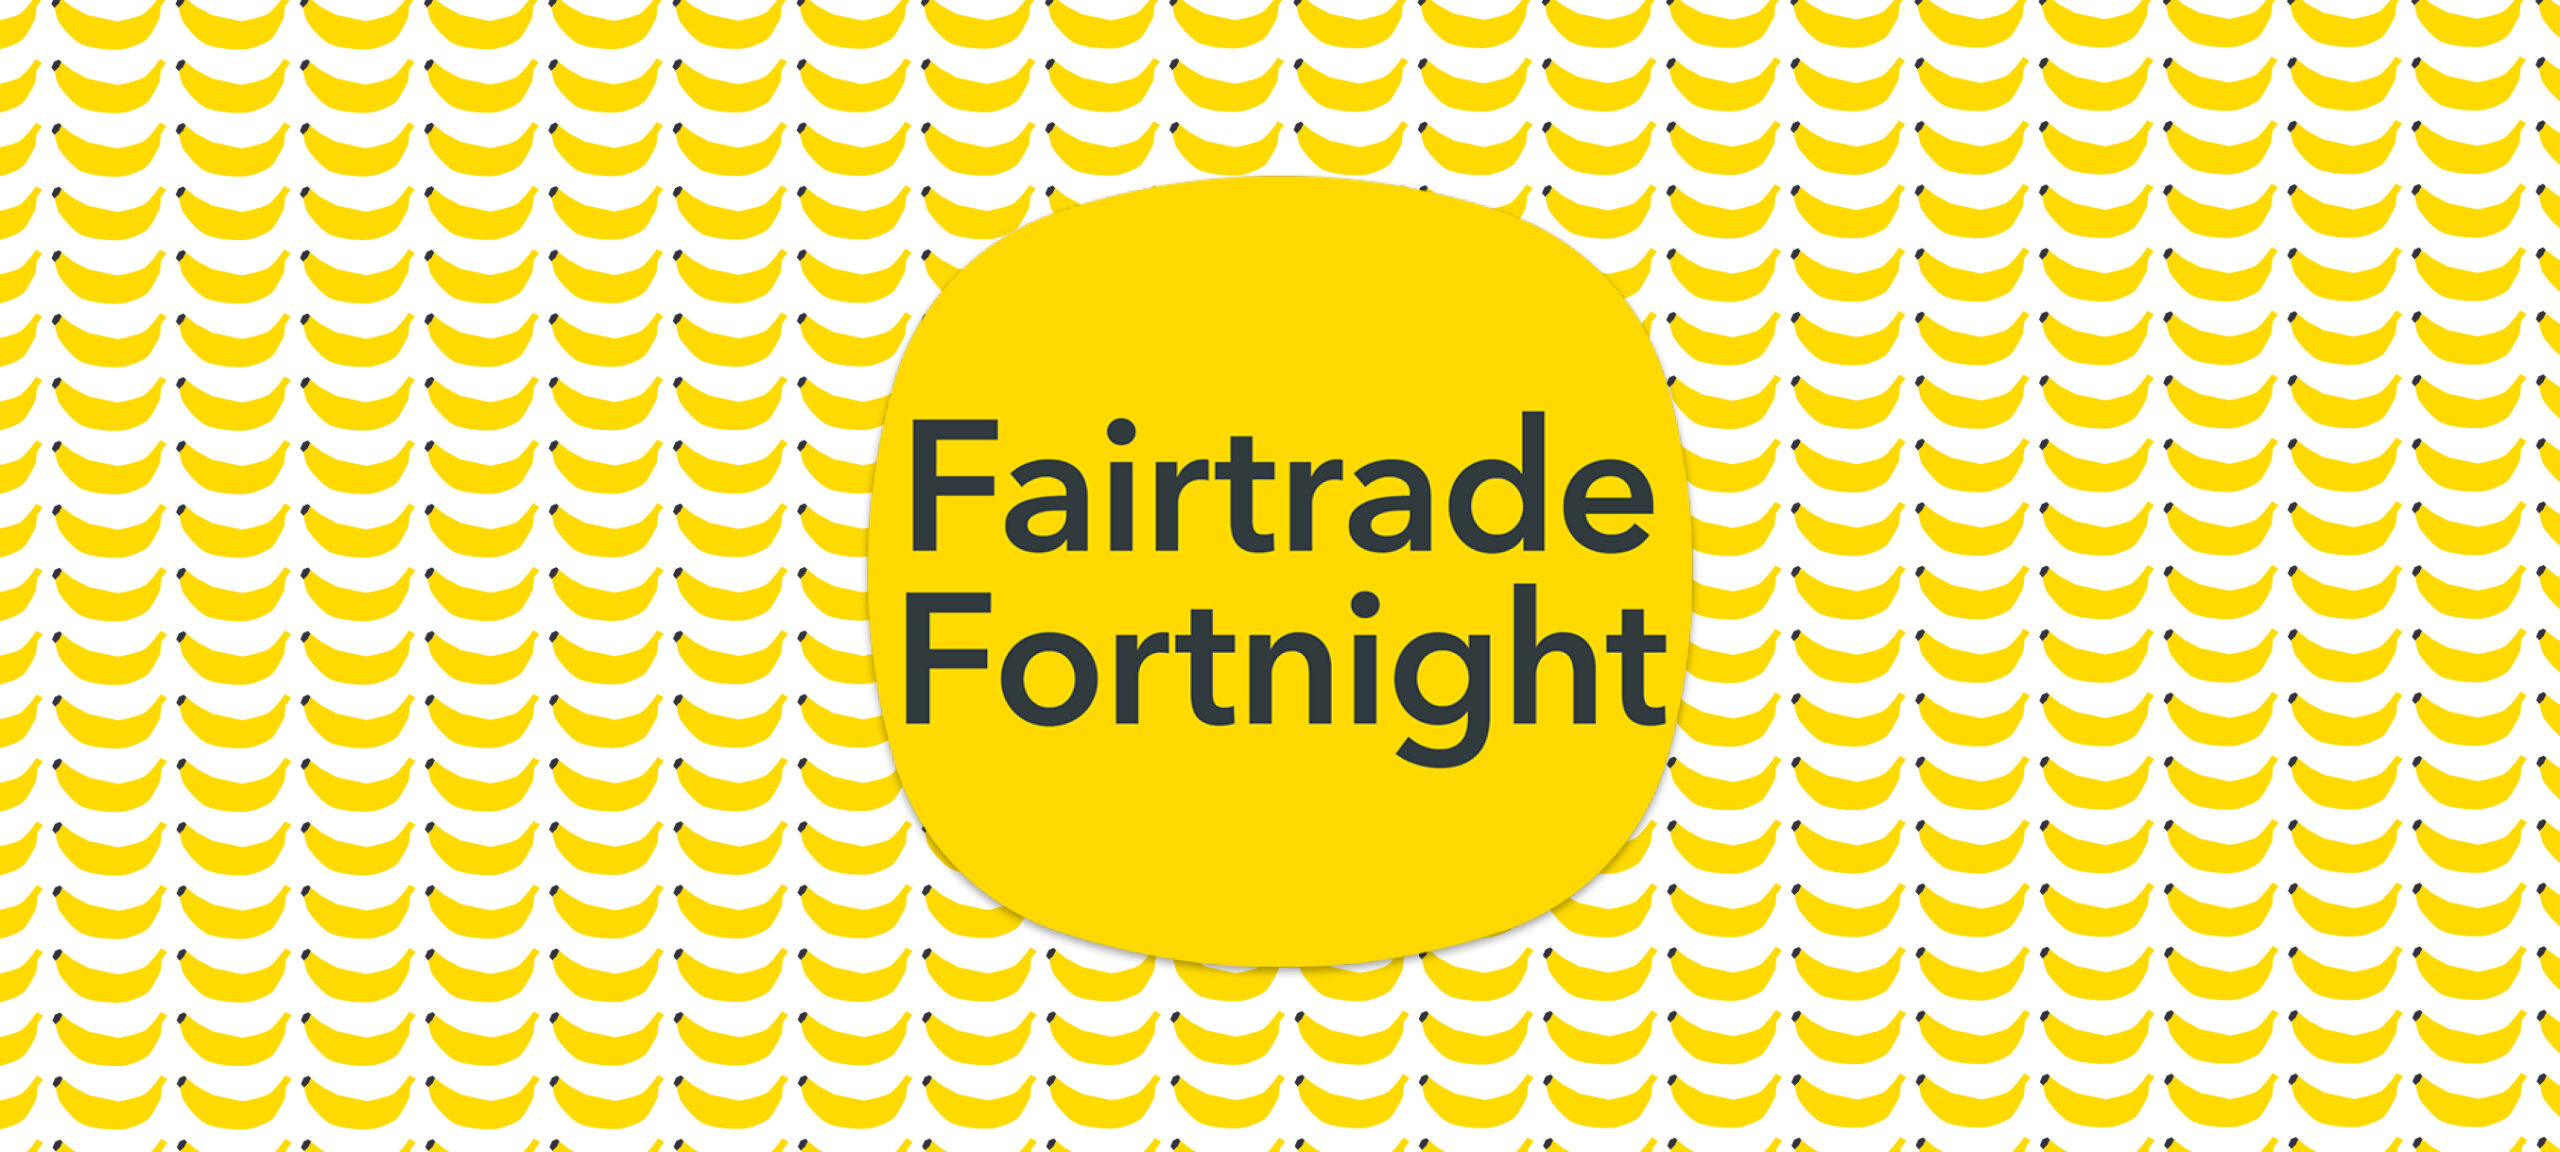 Fairtrade Fortnight Winners